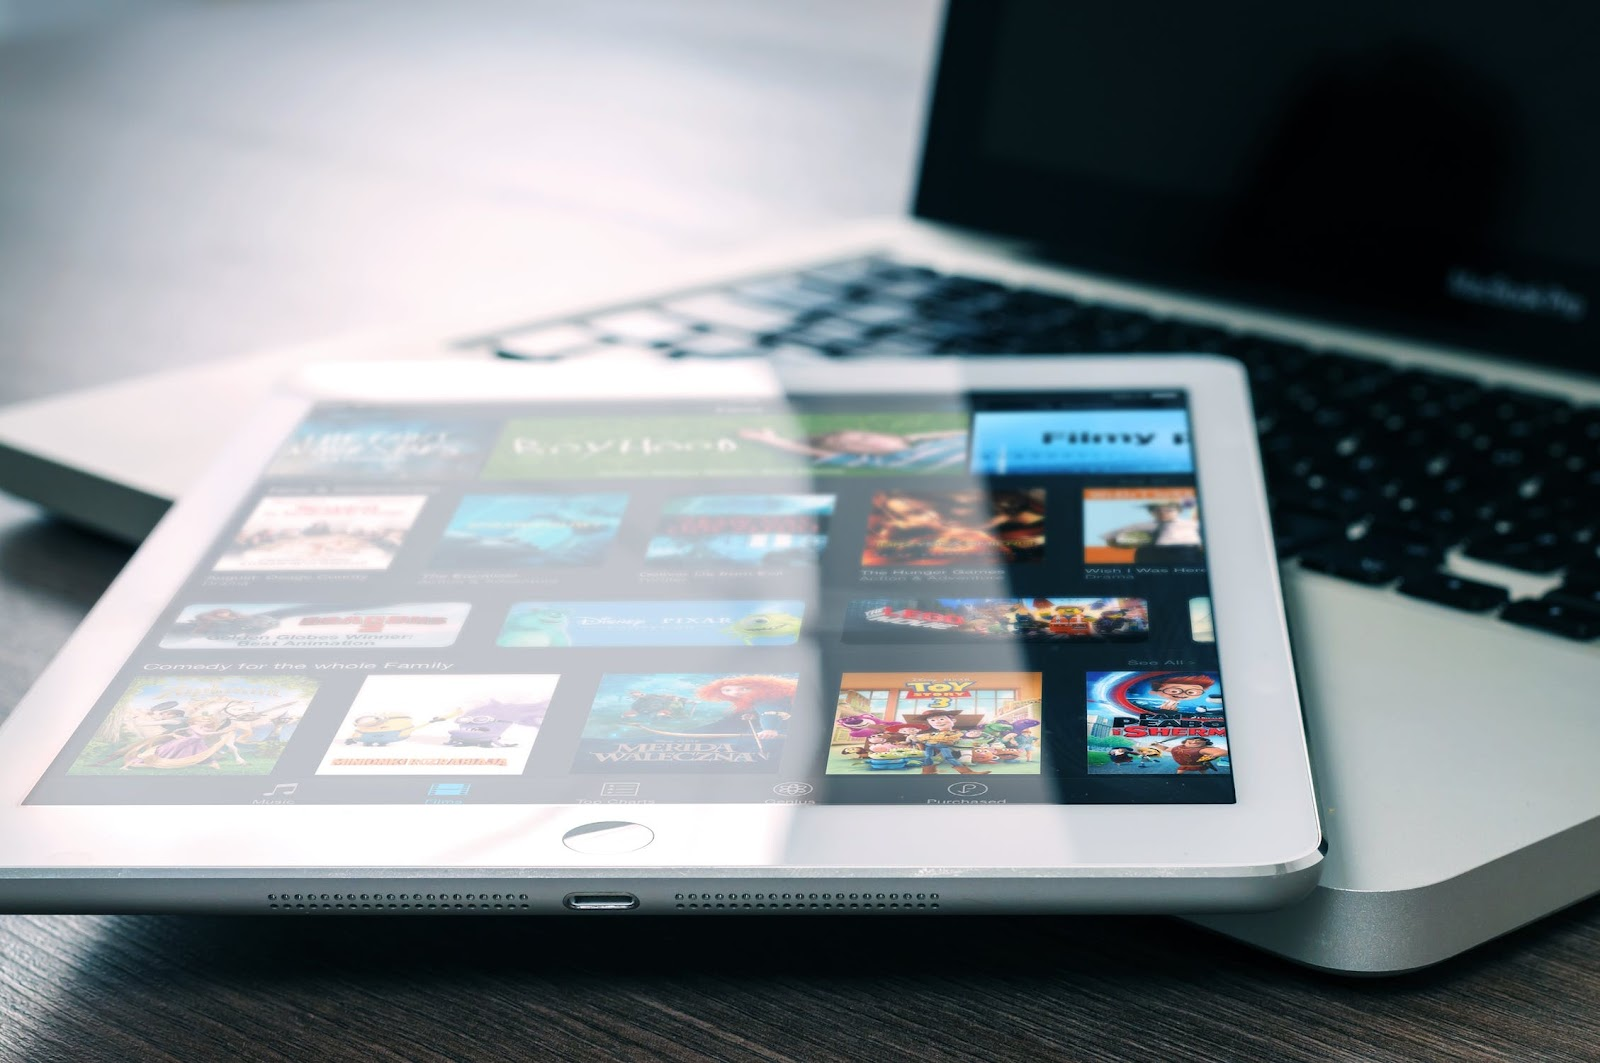 iPad showing a movie streaming service with a Macbook in the background.